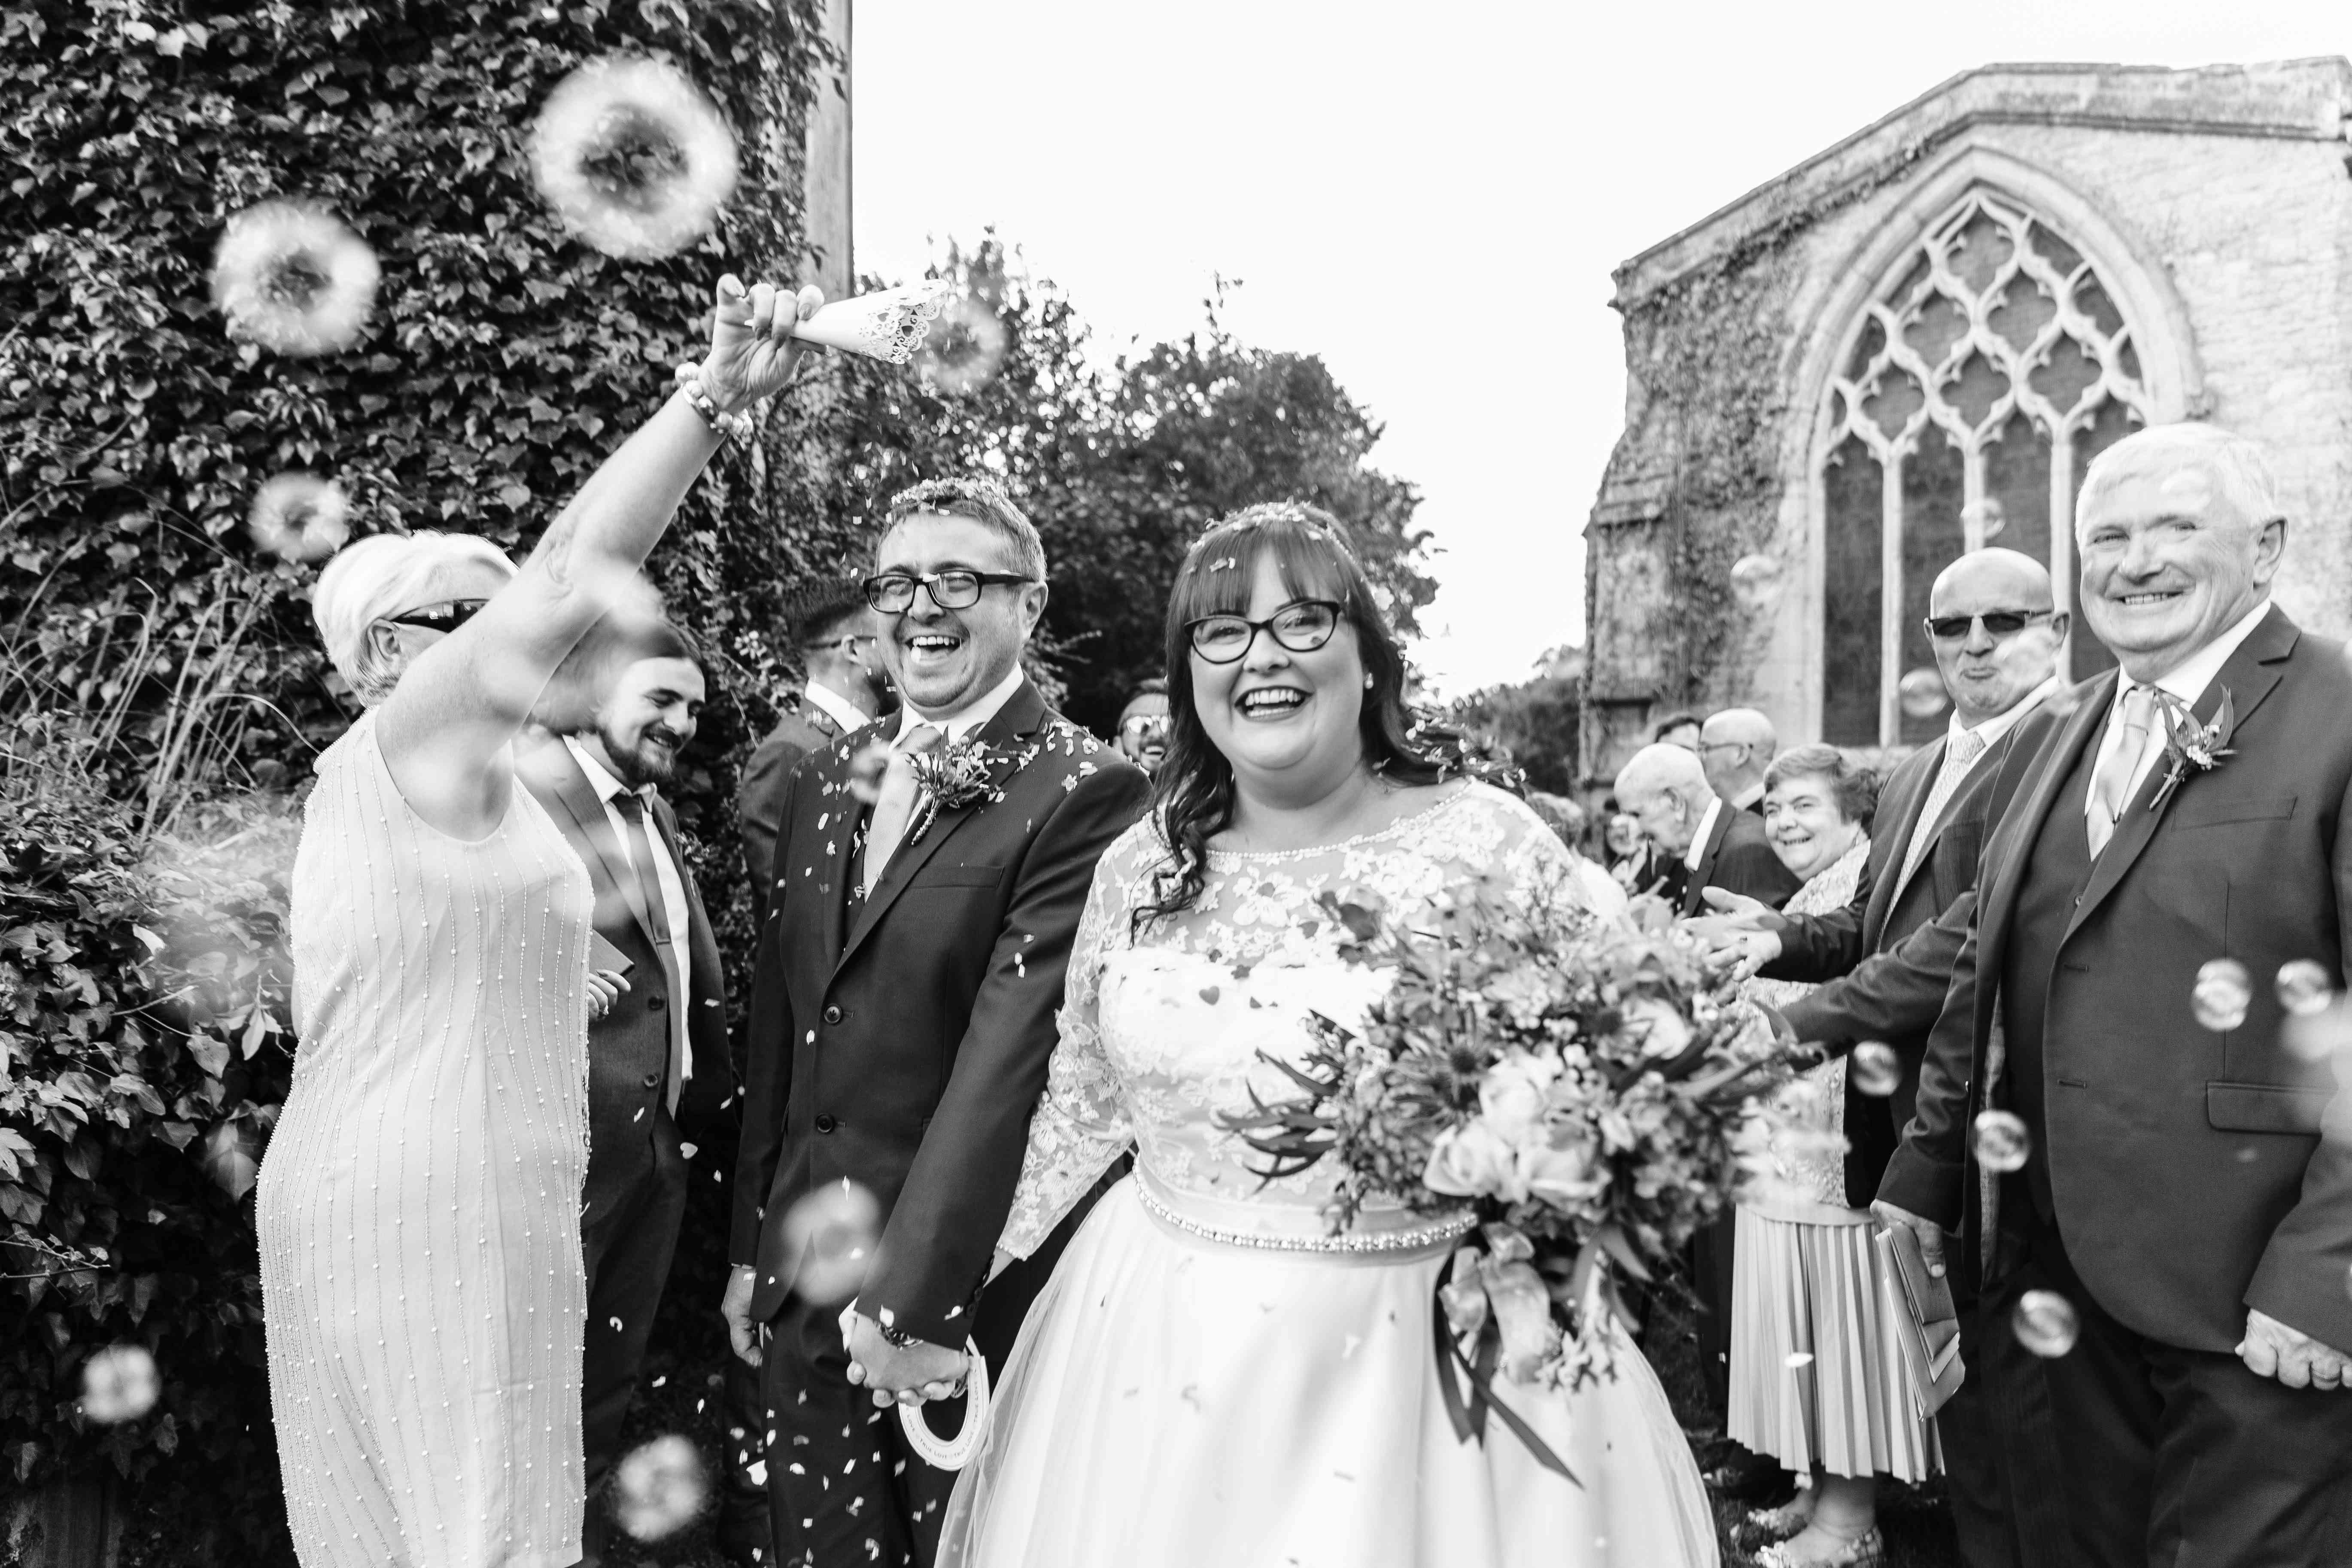 Bride and groom exiting wedding while guests blow bubbles